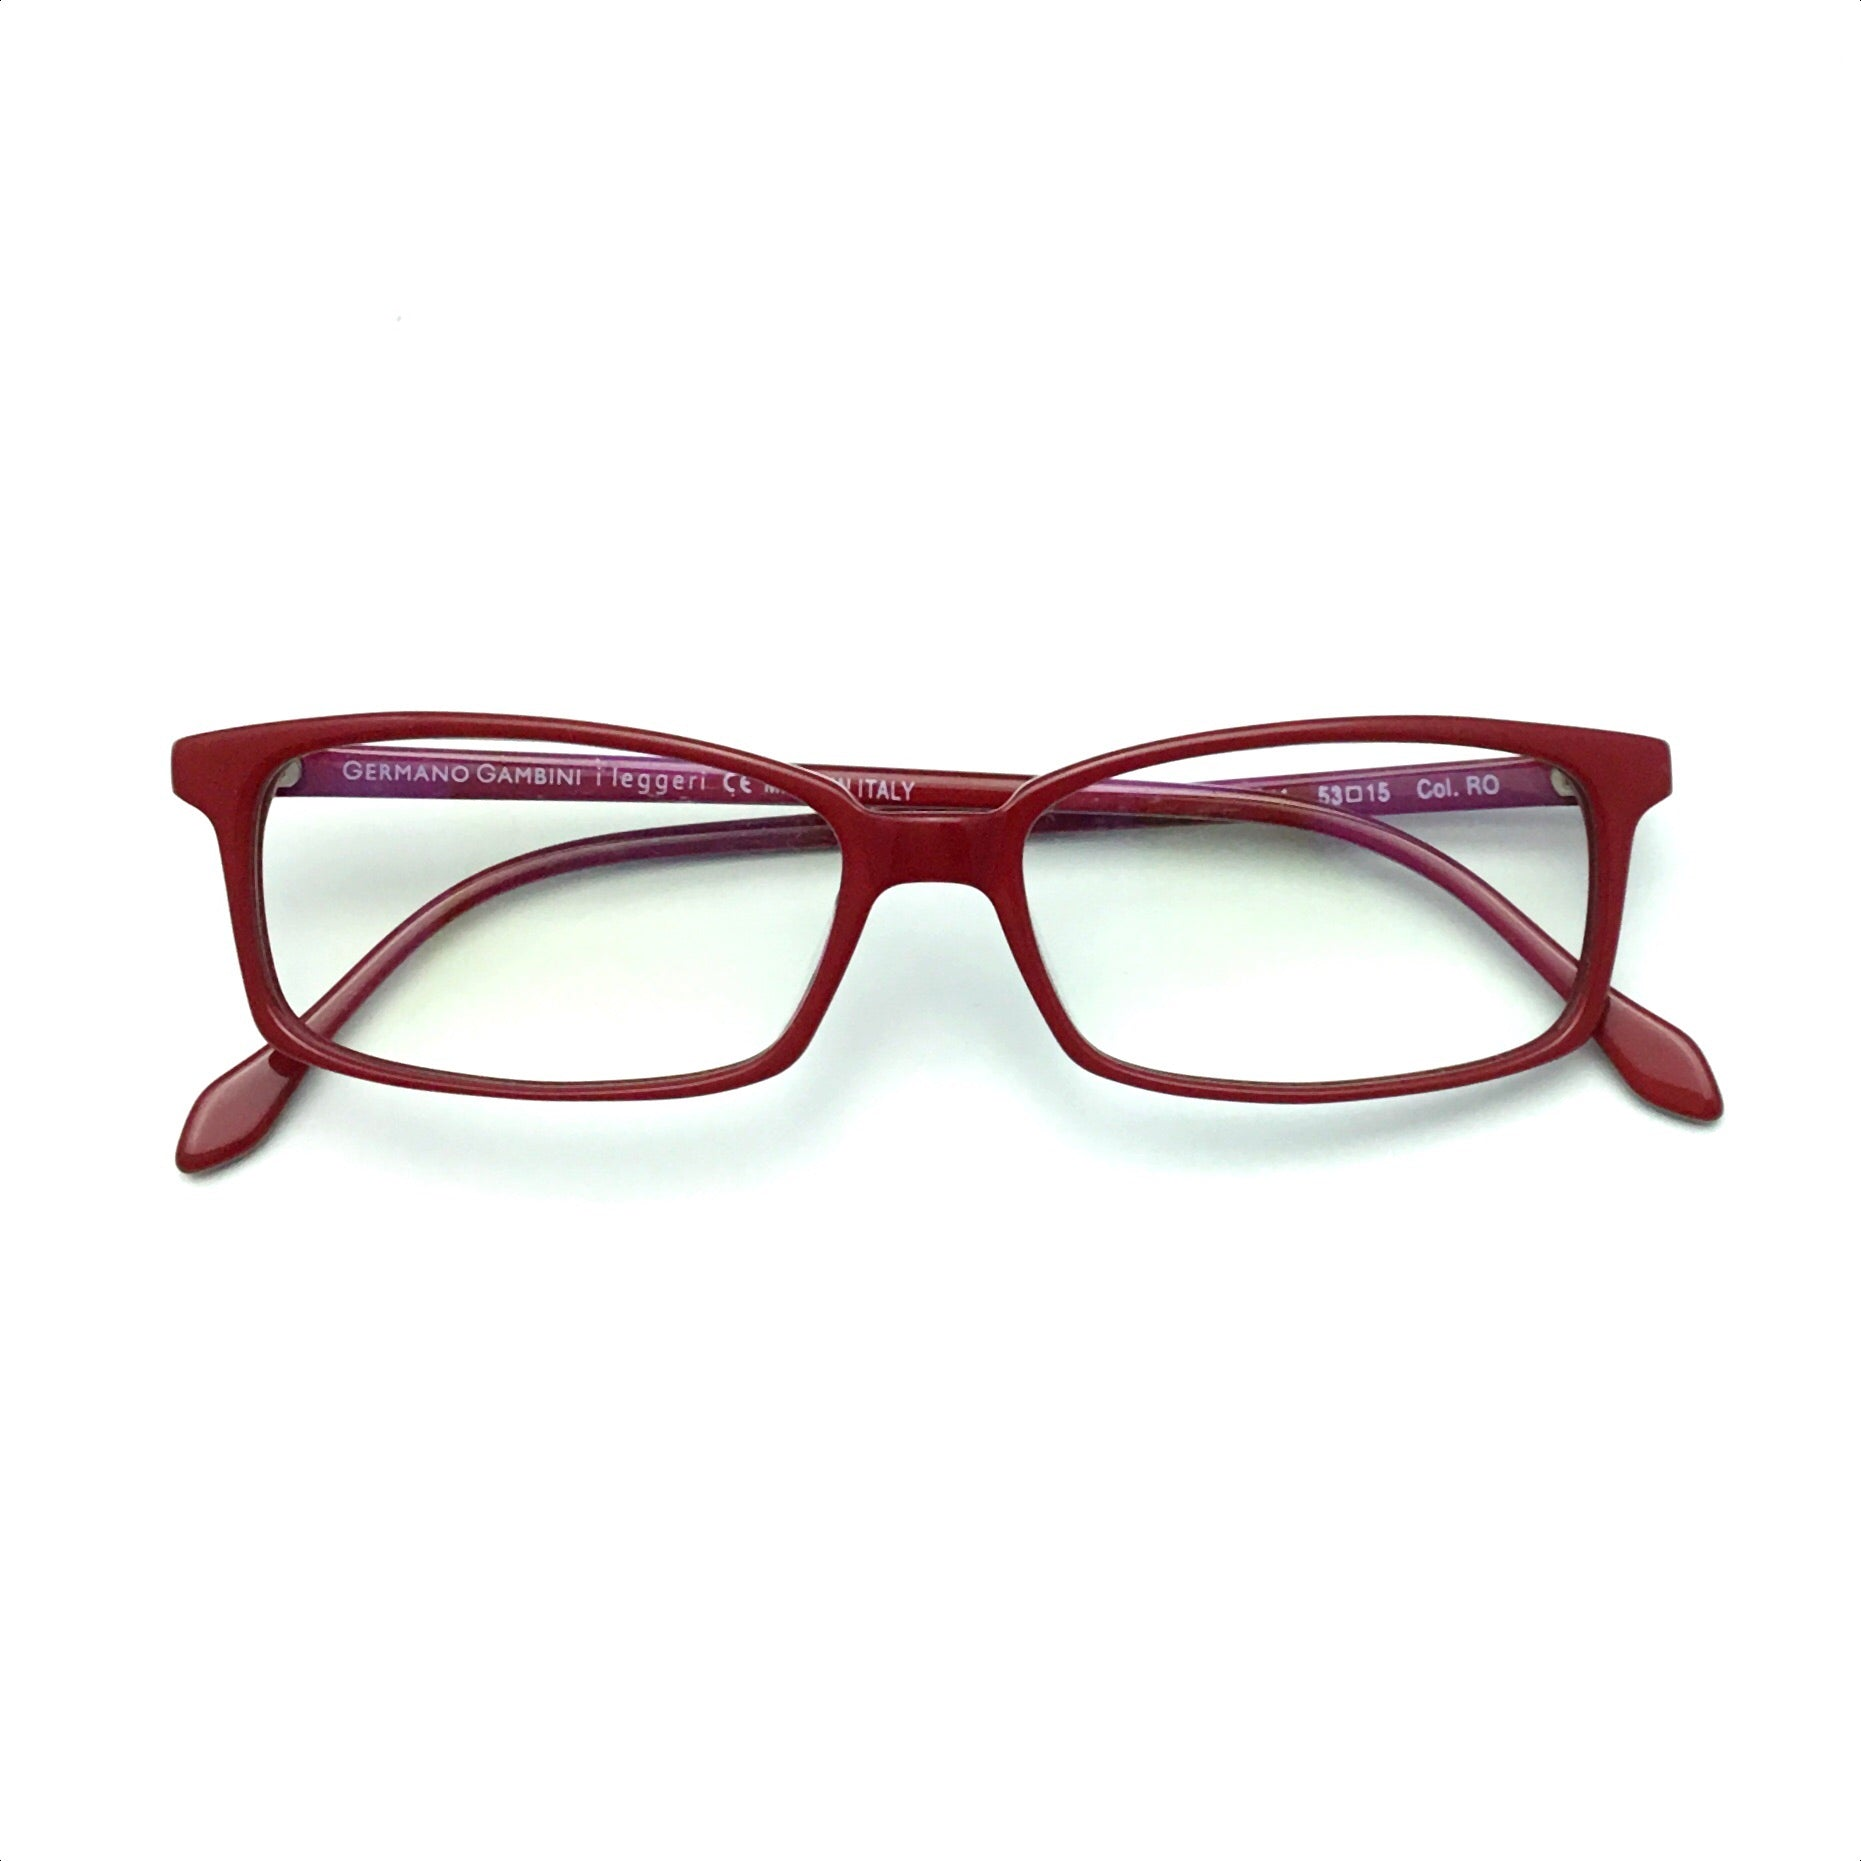 Germano Gambini Glasses $219 ITALY L4